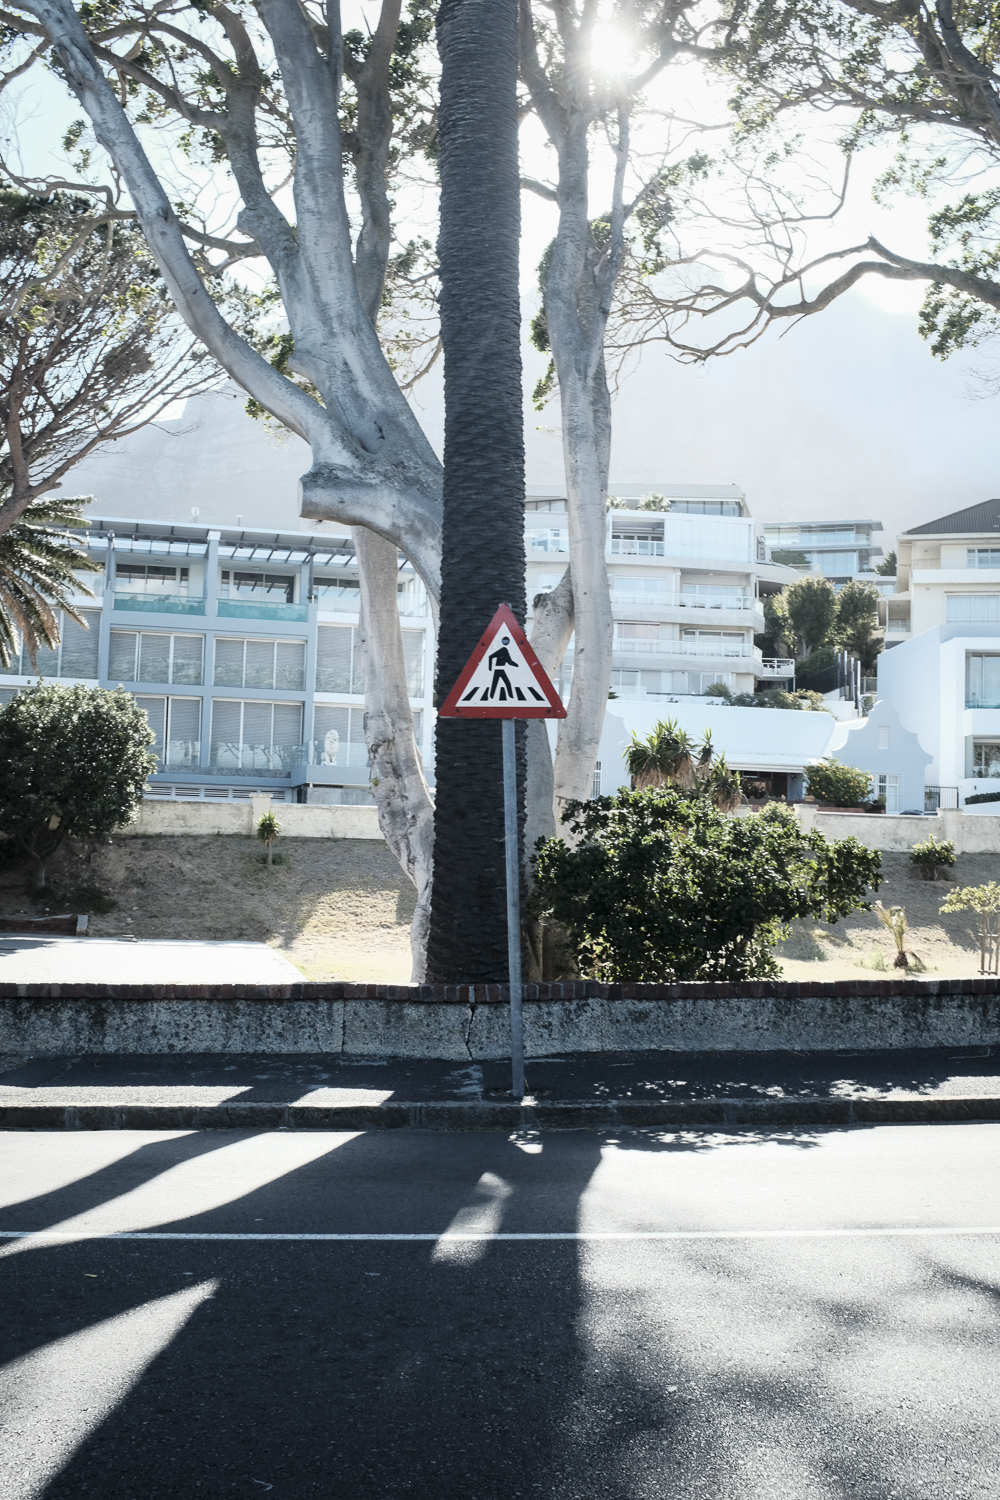 Camps-Bay-Cape-Town-crosswalk-traffic-sign.jpg